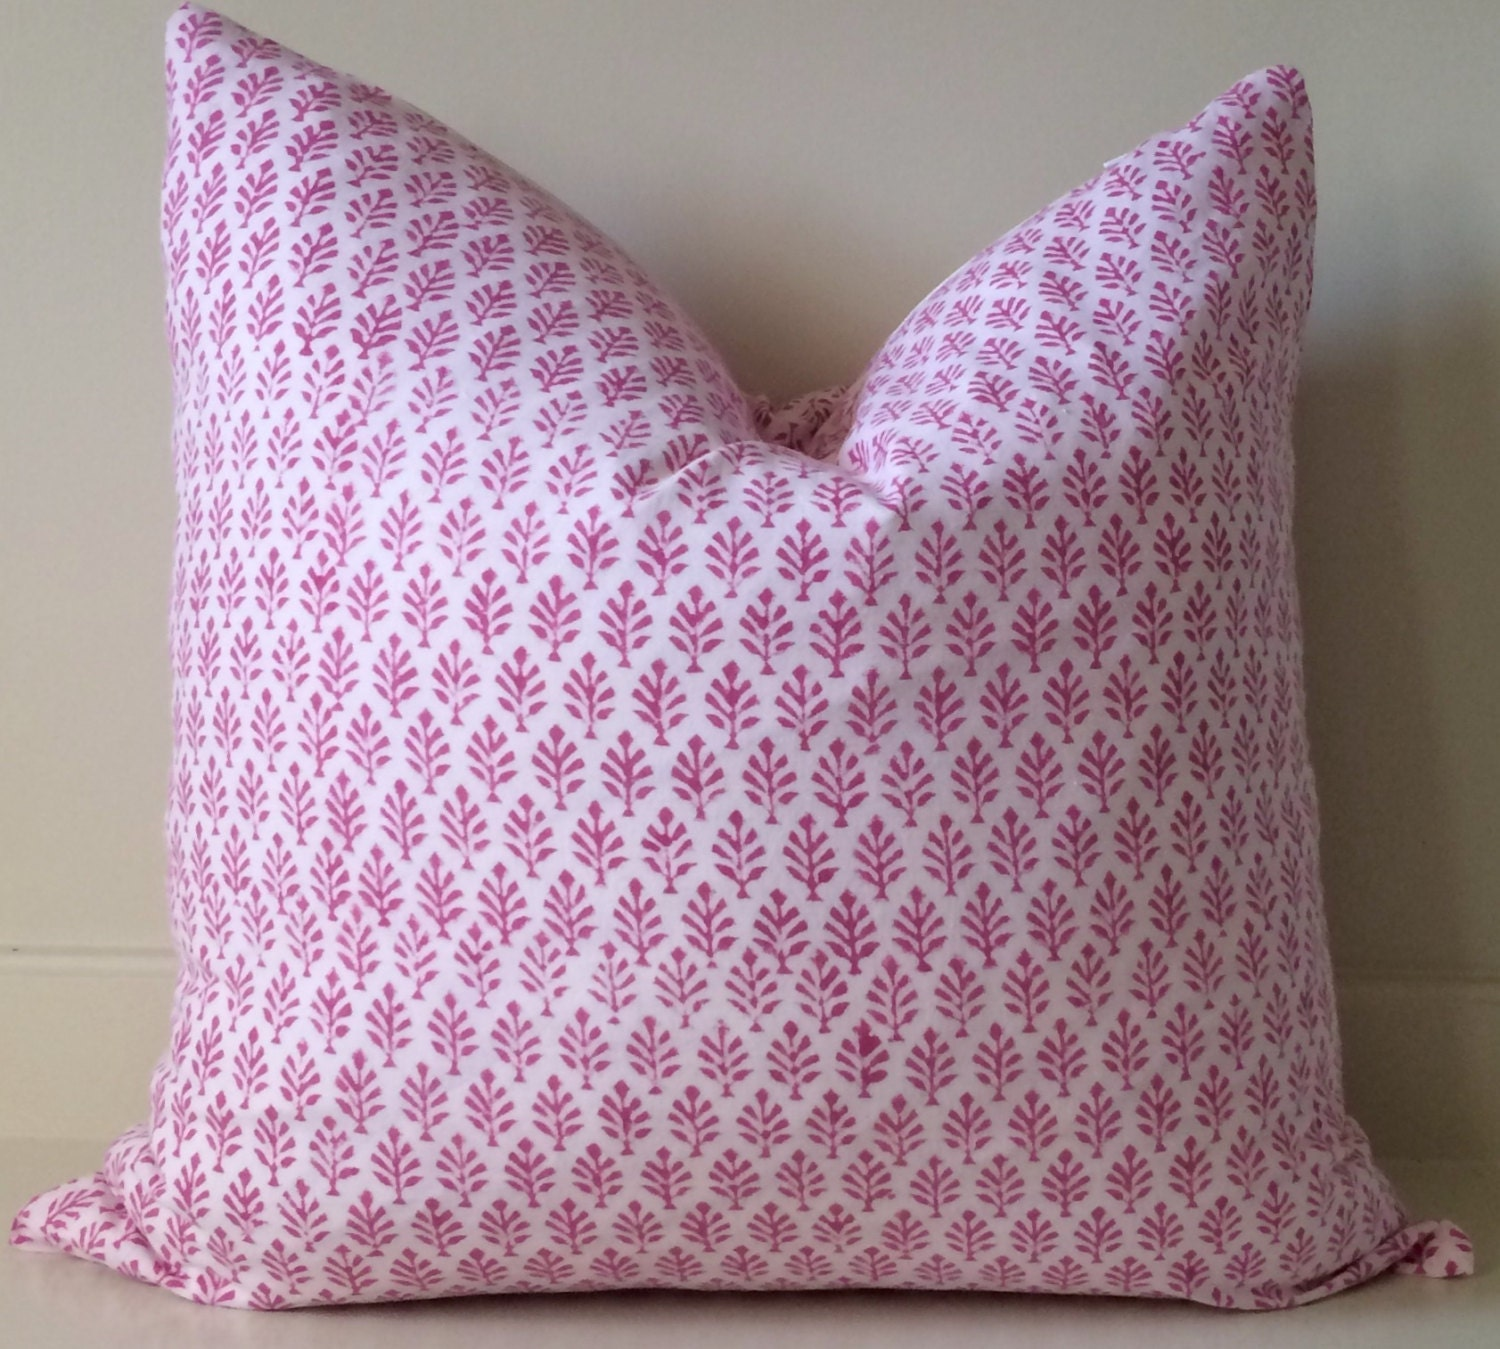 Modern Pillows Etsy : Pink Pillow Cover/ modern pillows / 16x16/ 18x18 / hand block